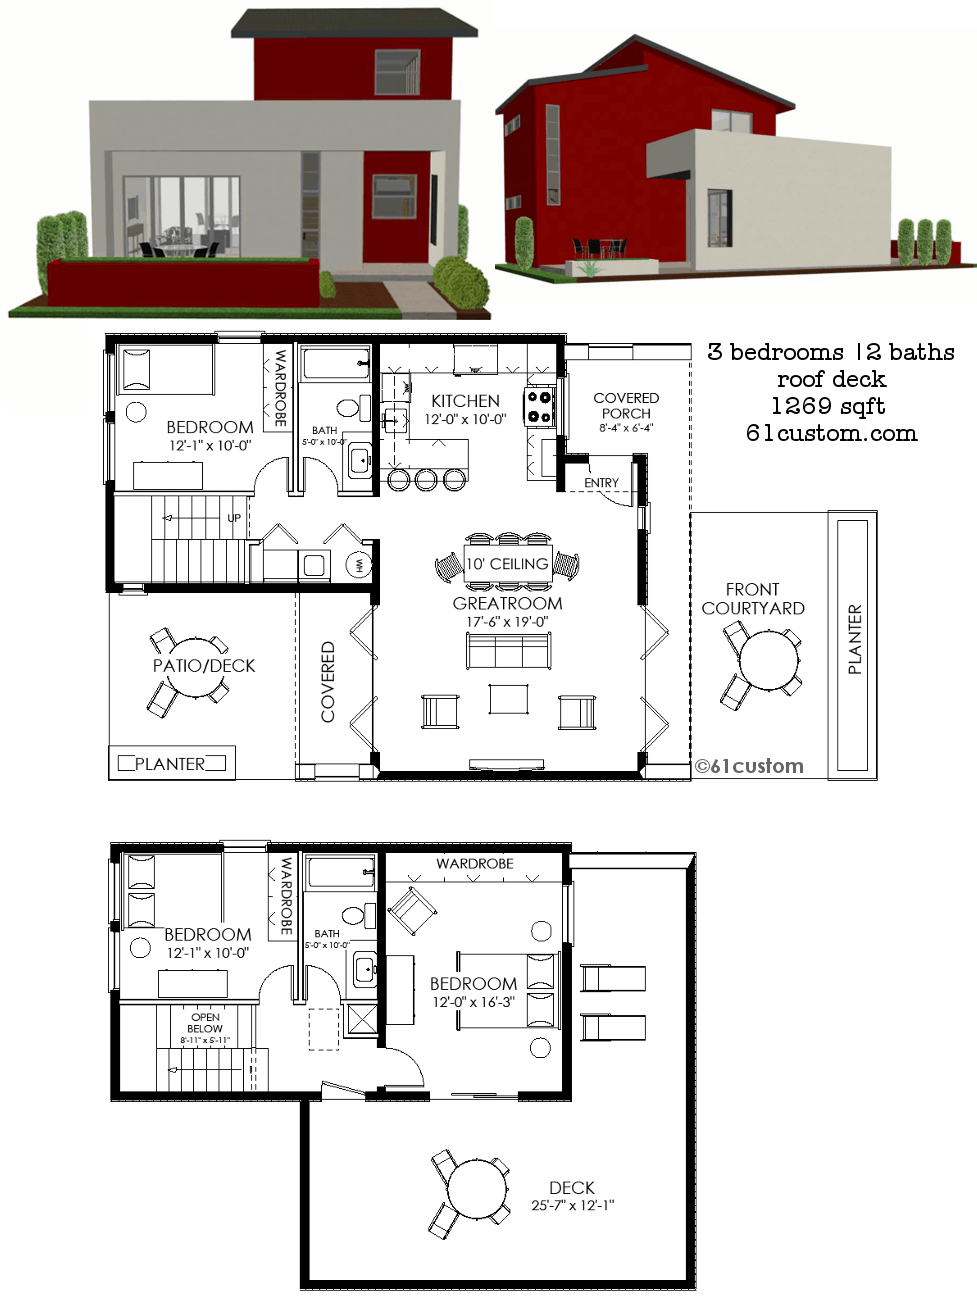 Contemporary small house plan 61custom contemporary modern house plans for Small modern house designs and floor plans